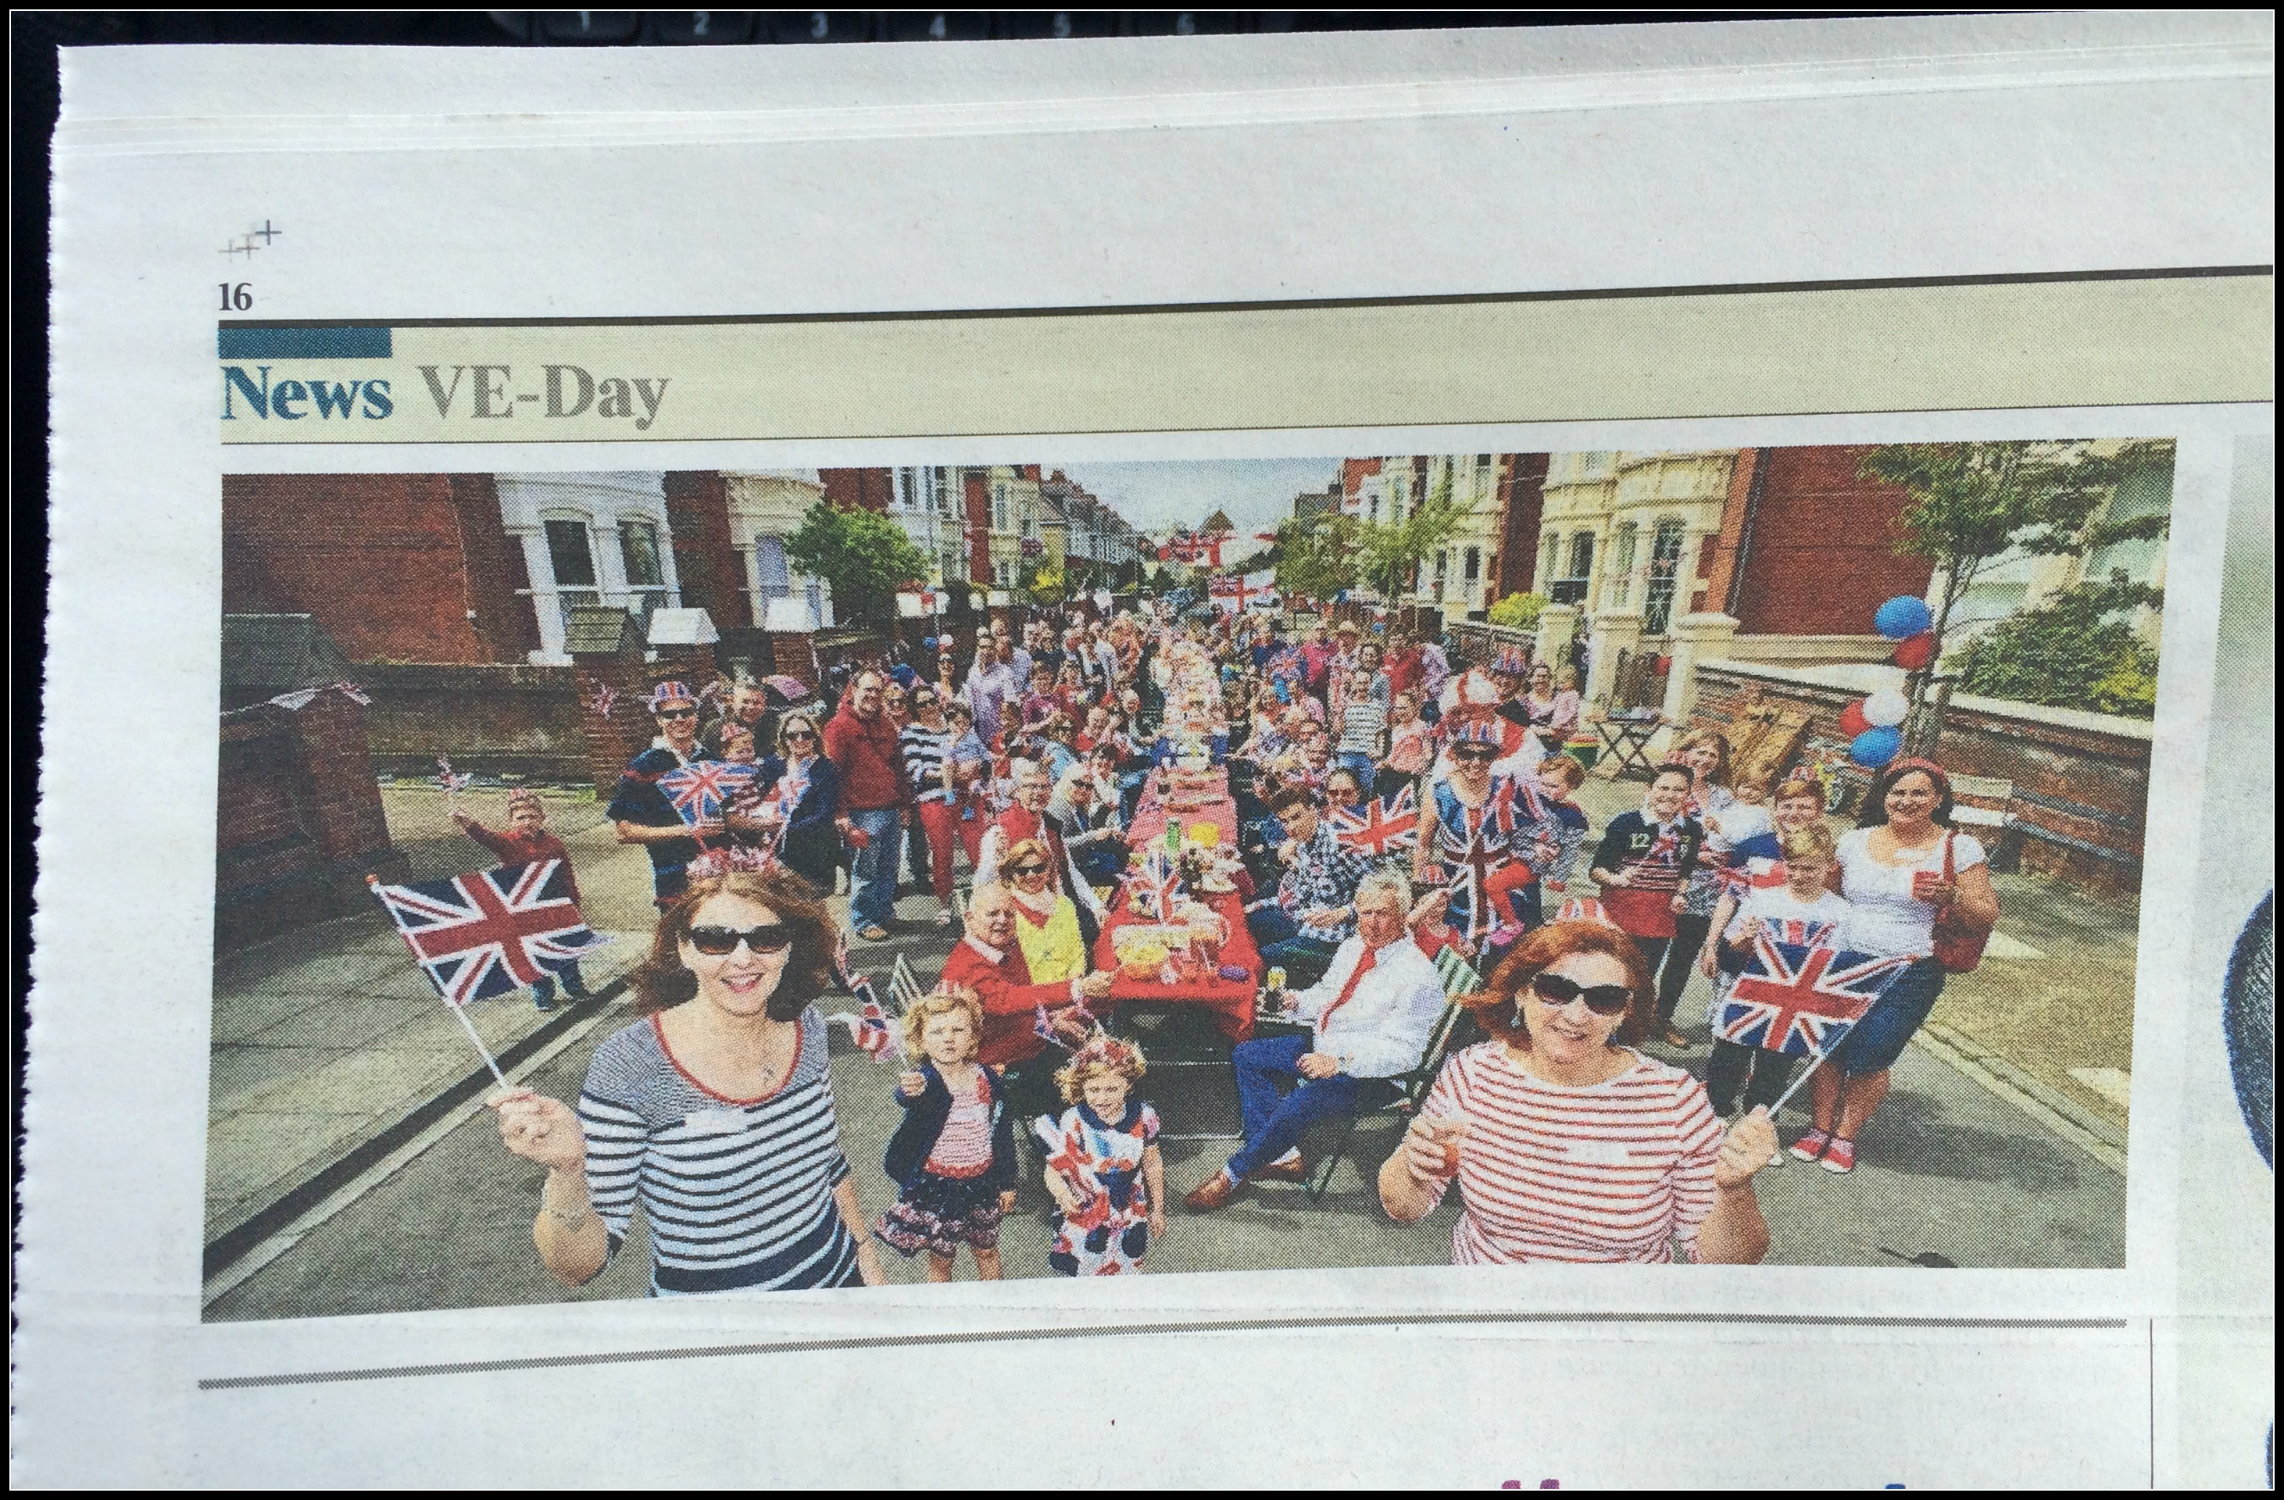 Page 16 of The Times newspaper and myphoto of the residents of Nettlecombe Avenue,Southsea enjoying their VE Daystreet party.